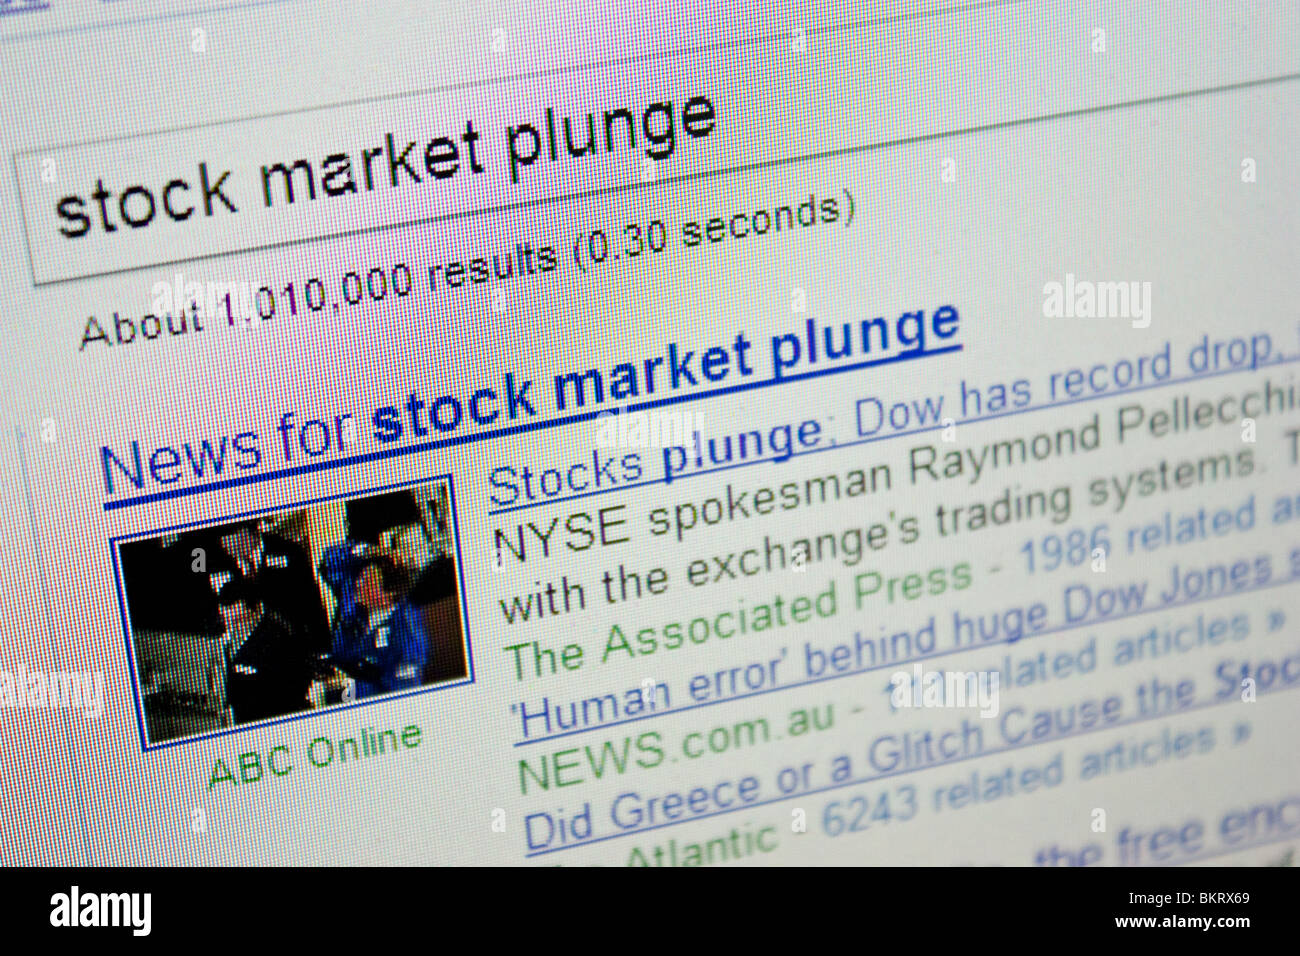 stock market plunge crash Dow record drop - Stock Image